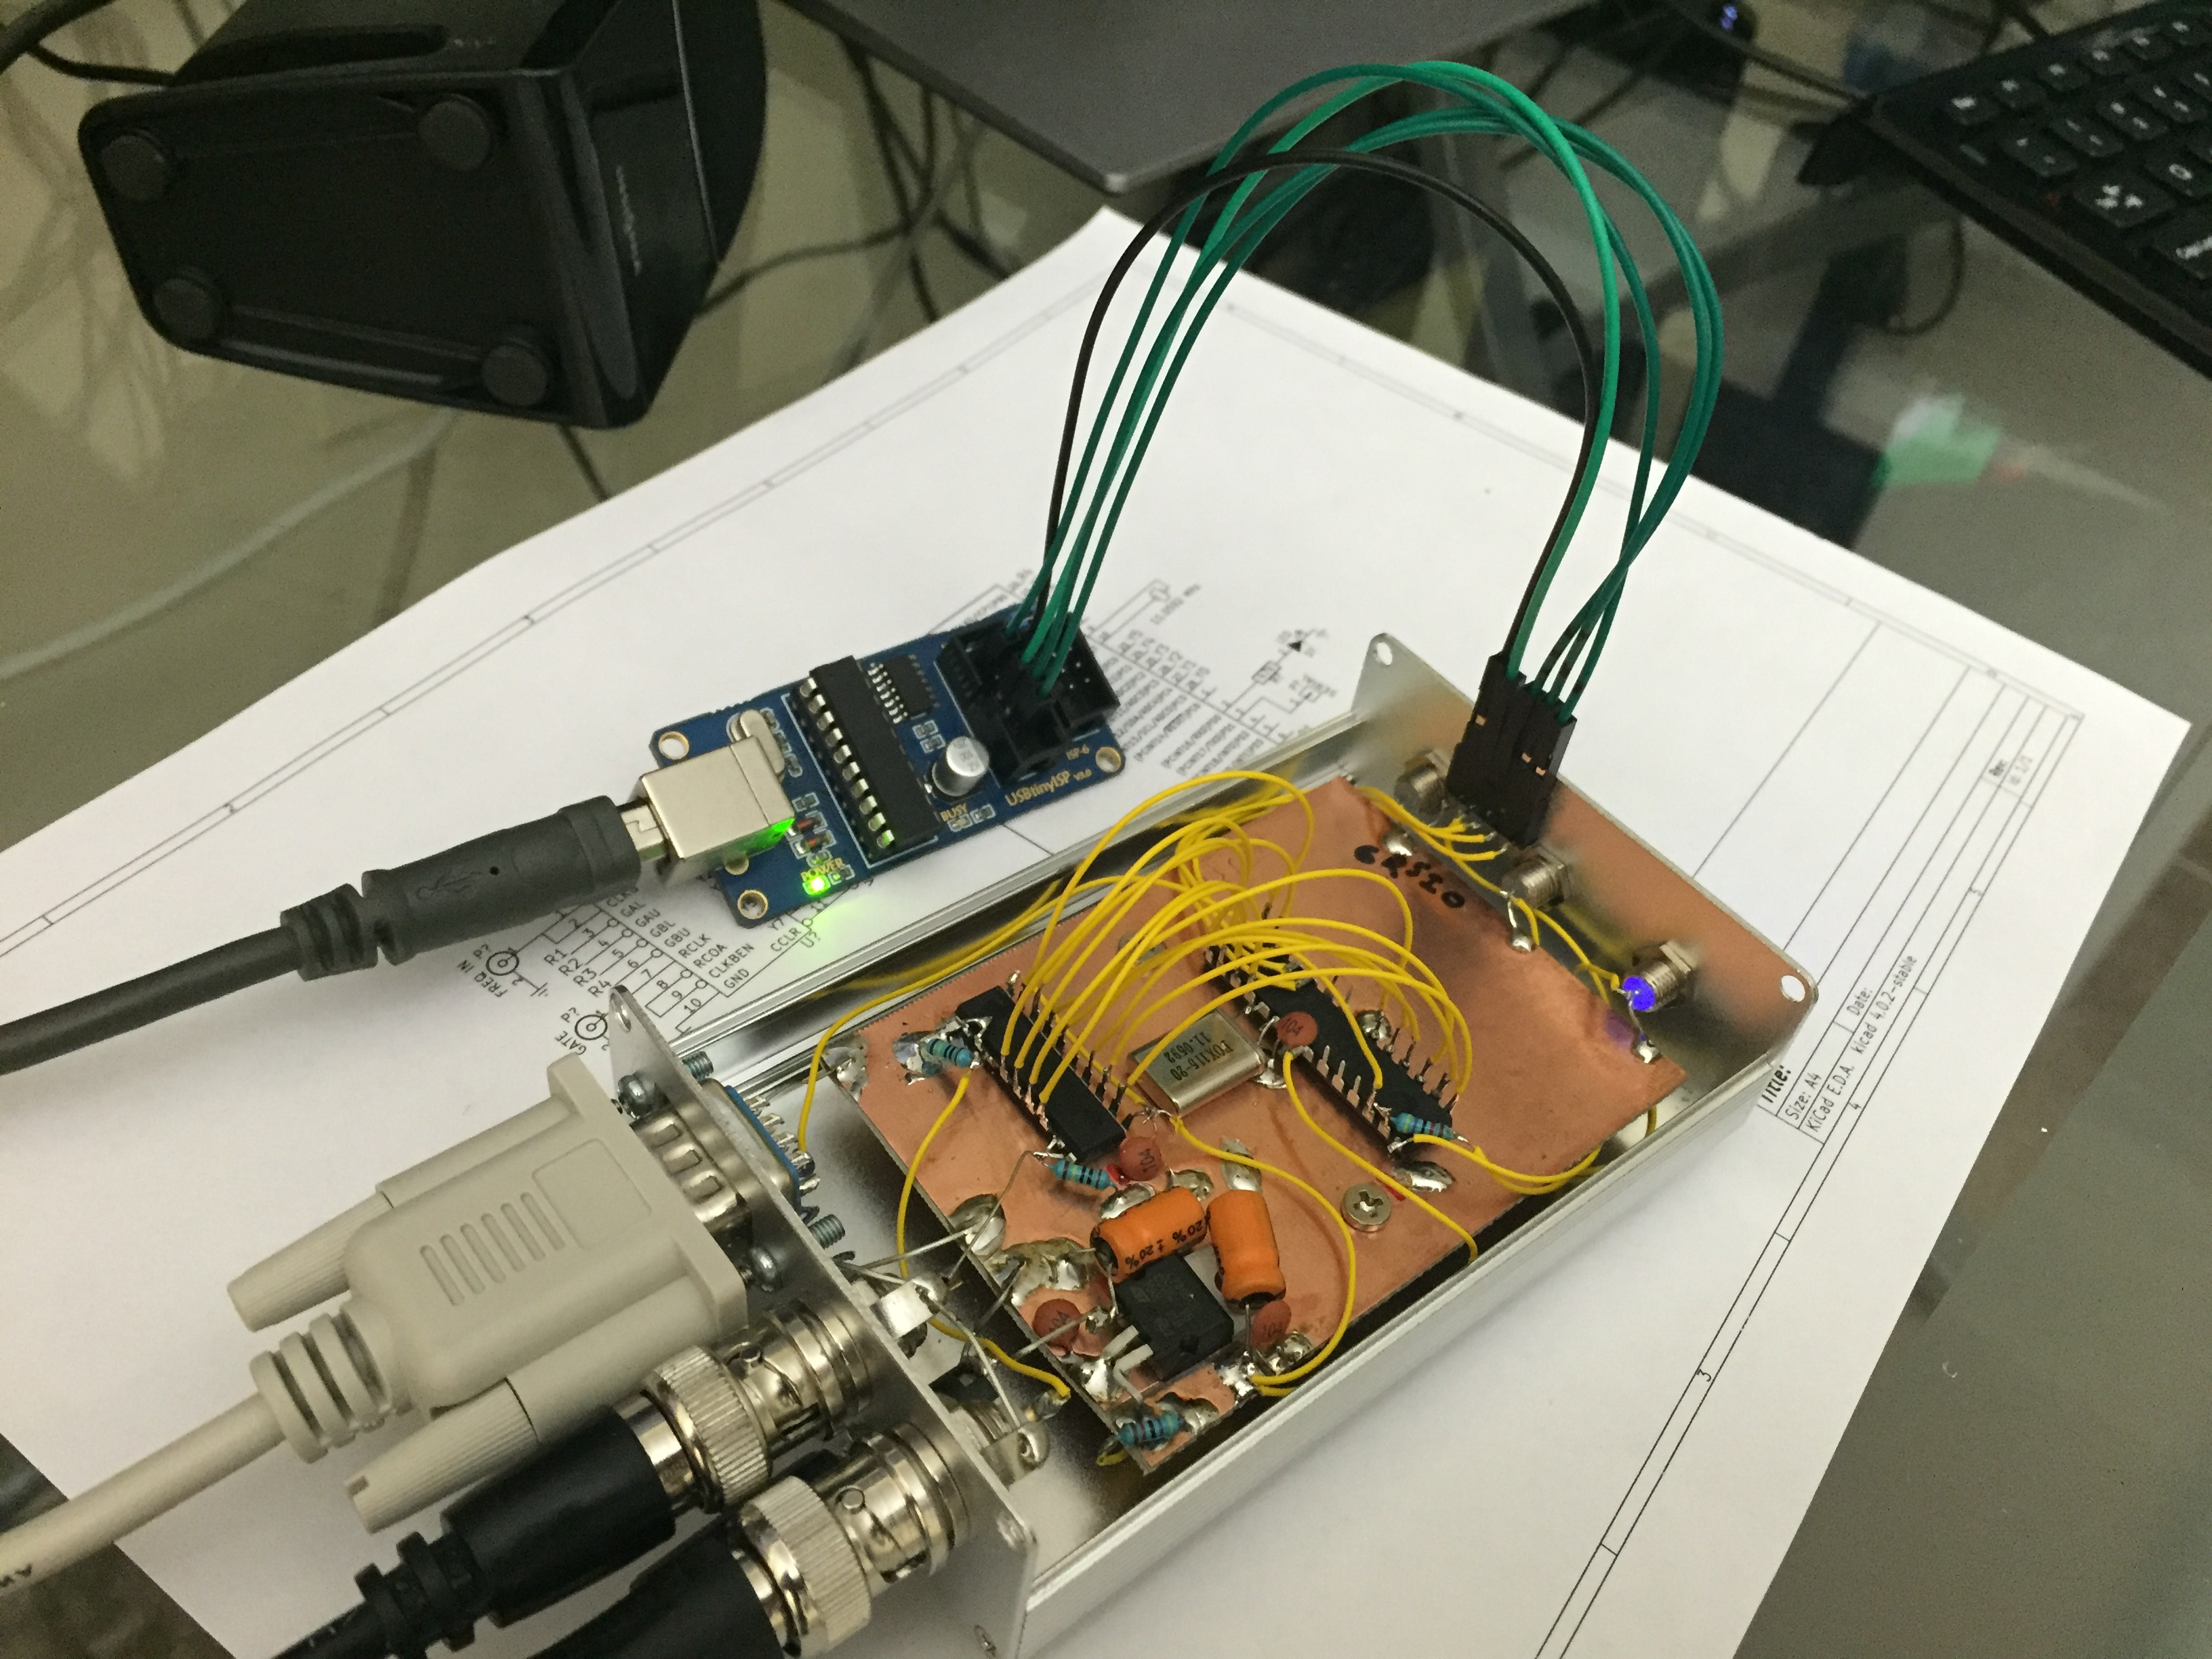 Microcontrollers Page 2 Kit K Compatible Microcontroller Atmega328p Breadboard Us Ebay I Super Glued A Female Header To The Aluminum Frame Make In Circuit Serial Programming Icsp Easy Cant Believe Never Thought Do This Before